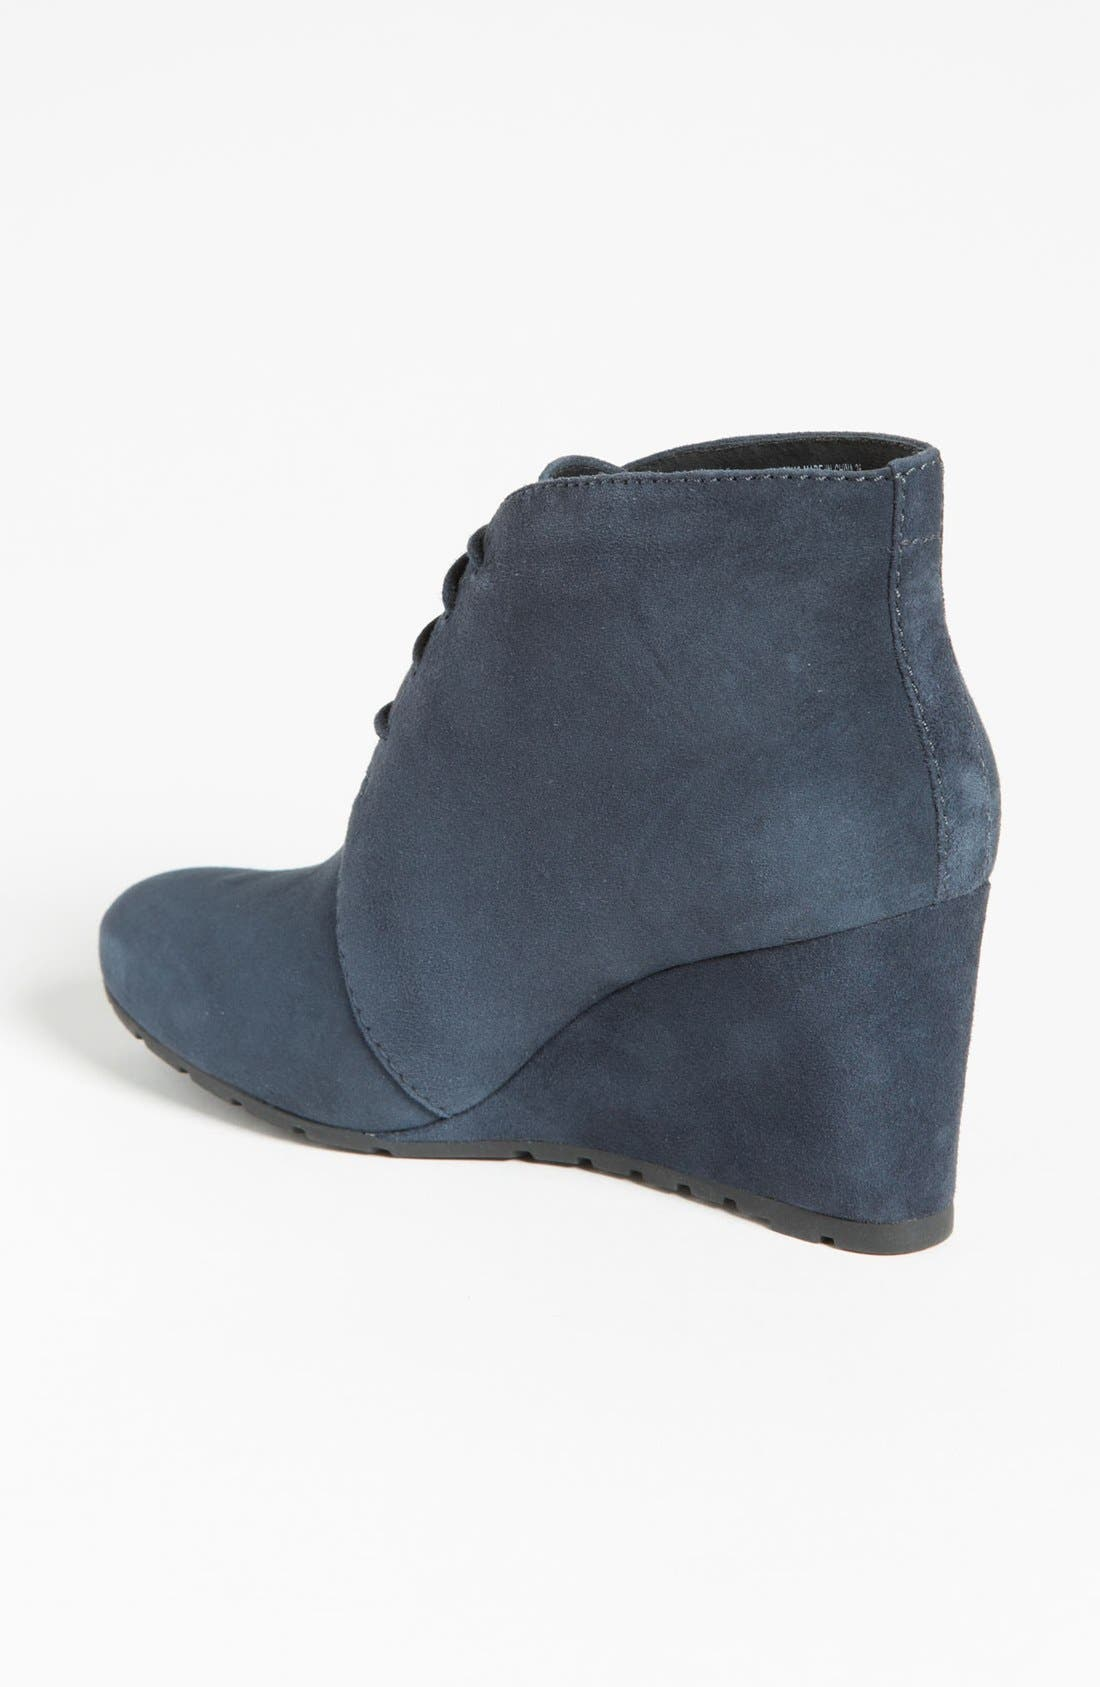 'Rosepoint Dew' Bootie,                             Alternate thumbnail 2, color,                             Navy Suede